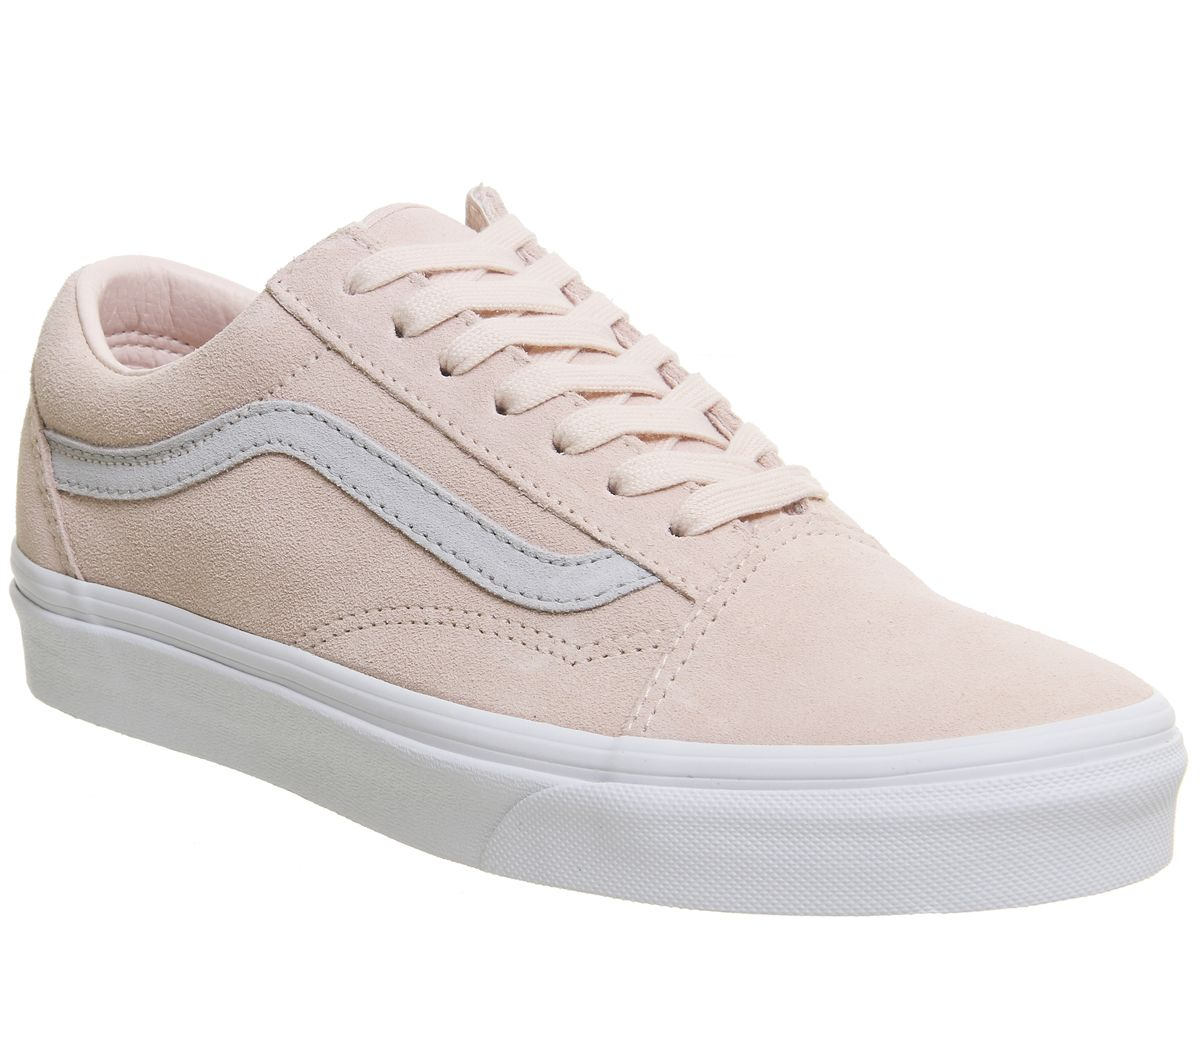 61ba63bace Vans Old Skool Trainers Pale Pink Grey Exclusive - Unisex Sports